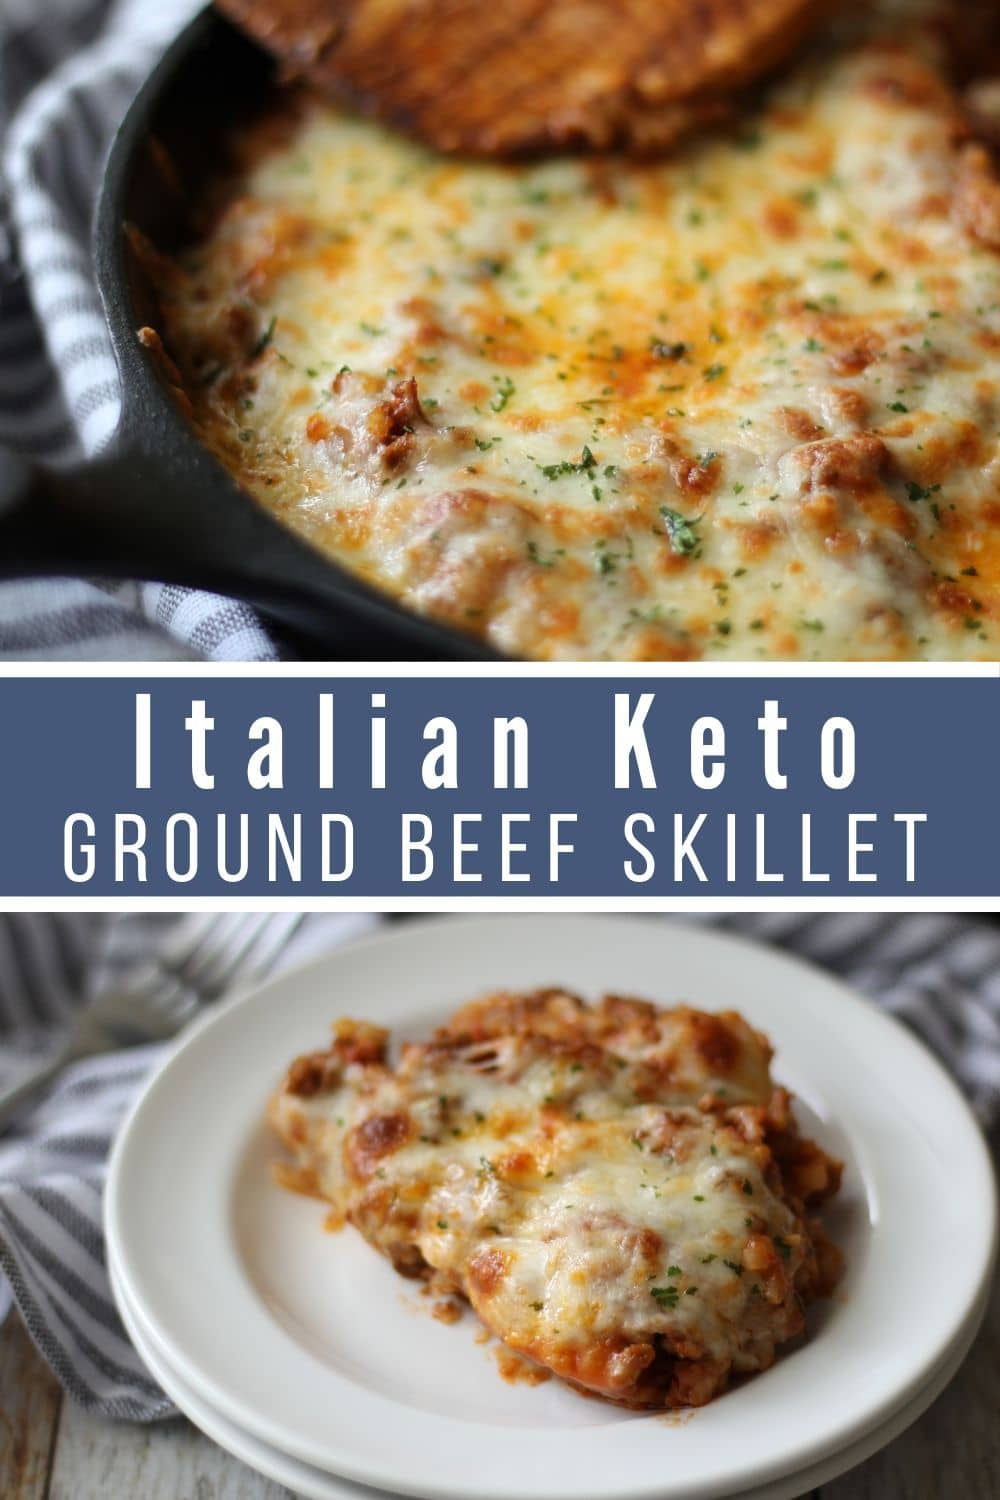 Collage of two pictures with Italian Keto Ground Beef Skillet.